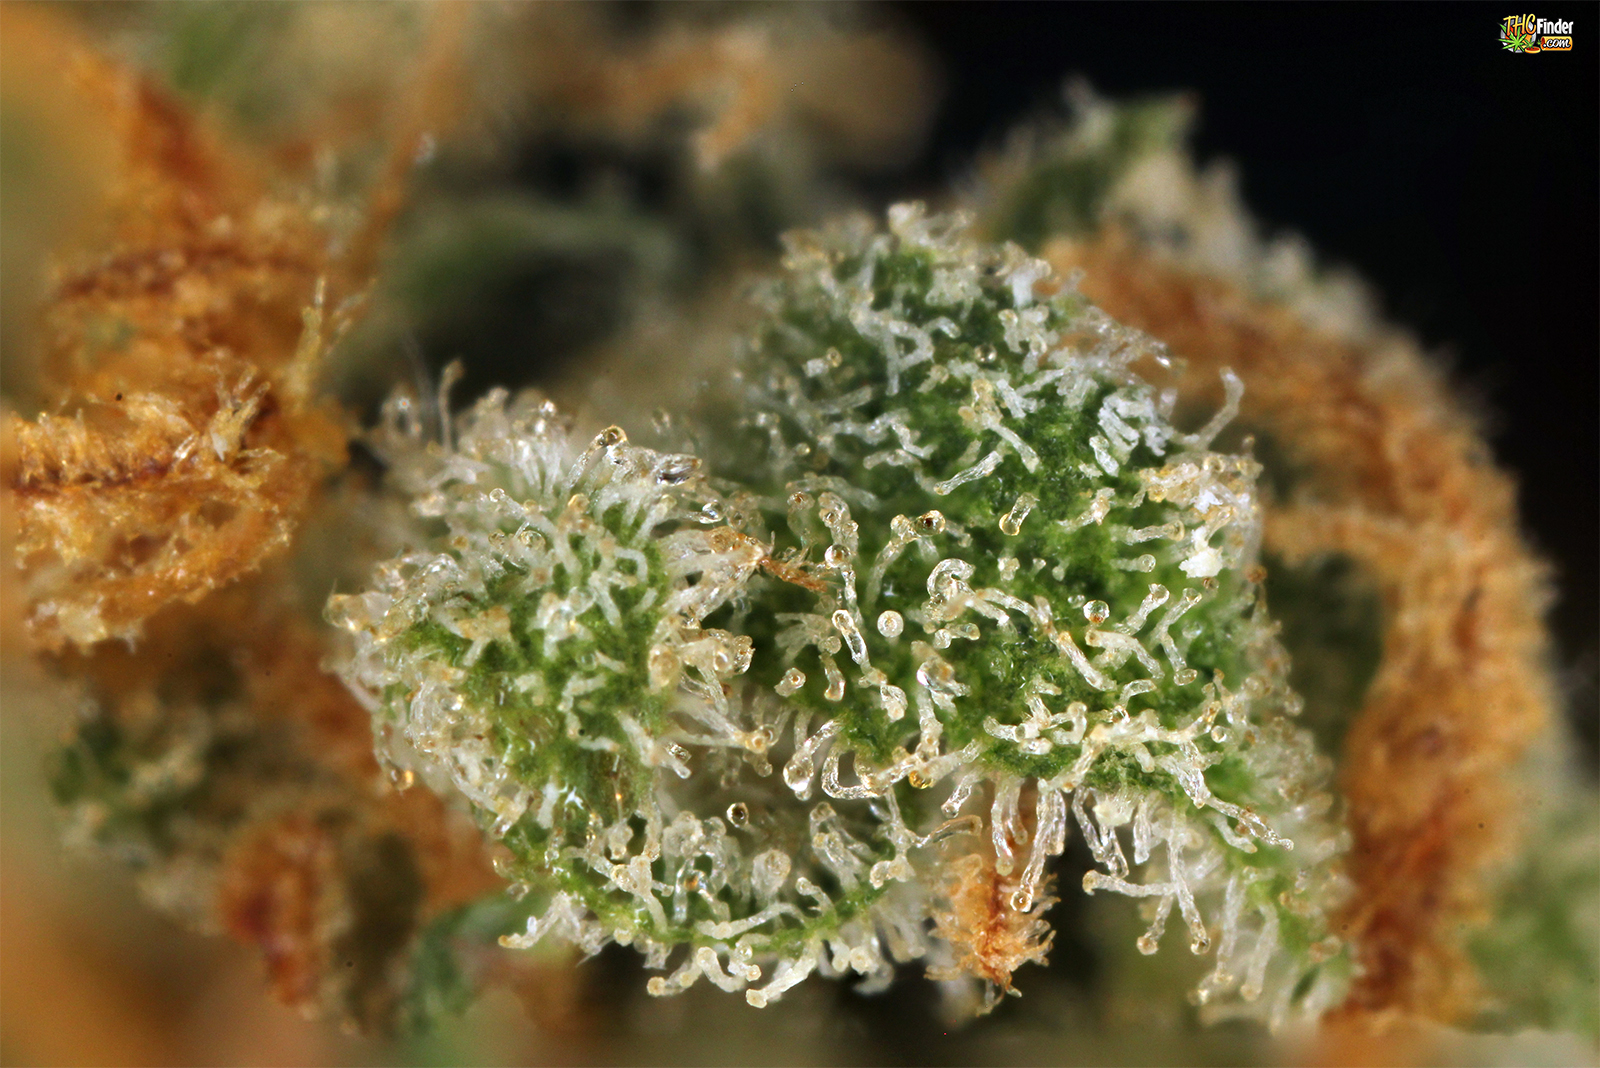 bctrichomes